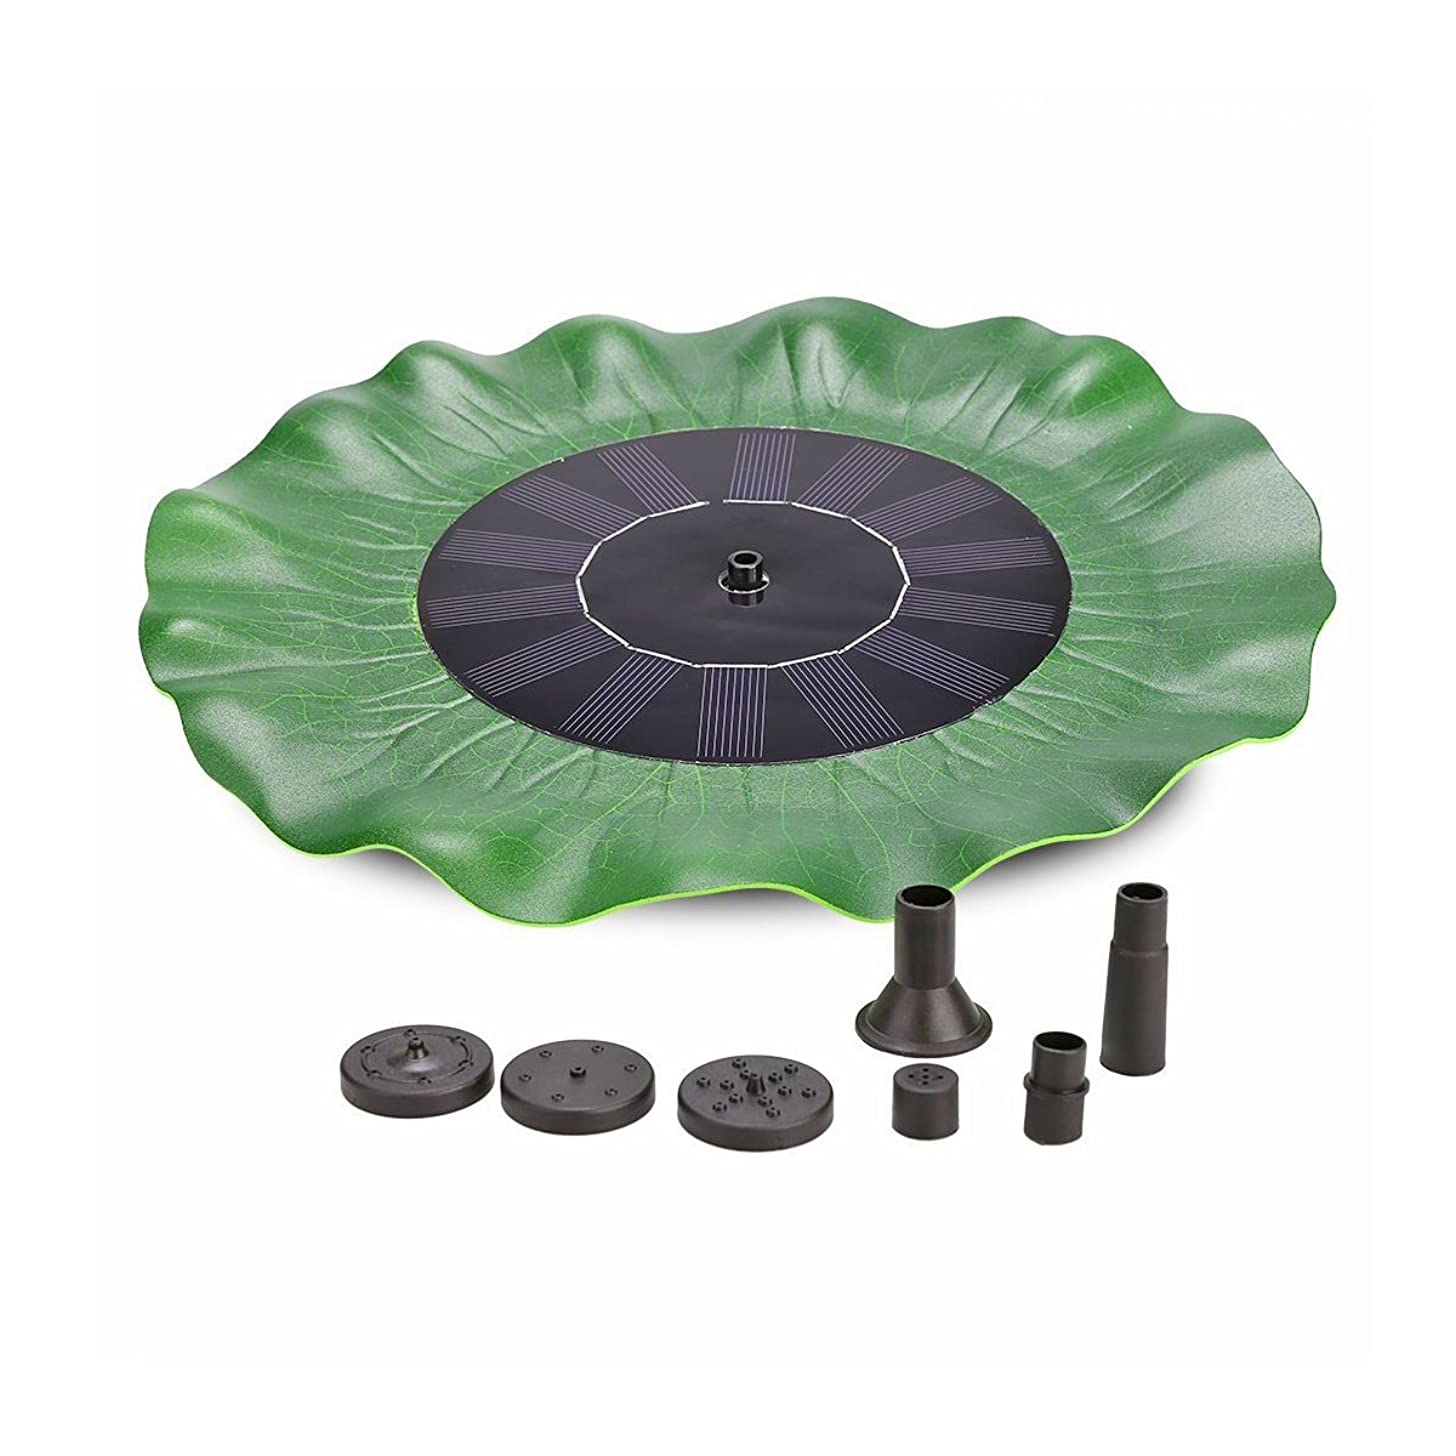 CATNOCT Solar Energy Panel Green Lotus Leaf Pools Decorative Fountain with Micro Brushless Water Pump Submersible for Ponds Fountain Pool Garden 8V 1.4W 200L/h Lift 20in